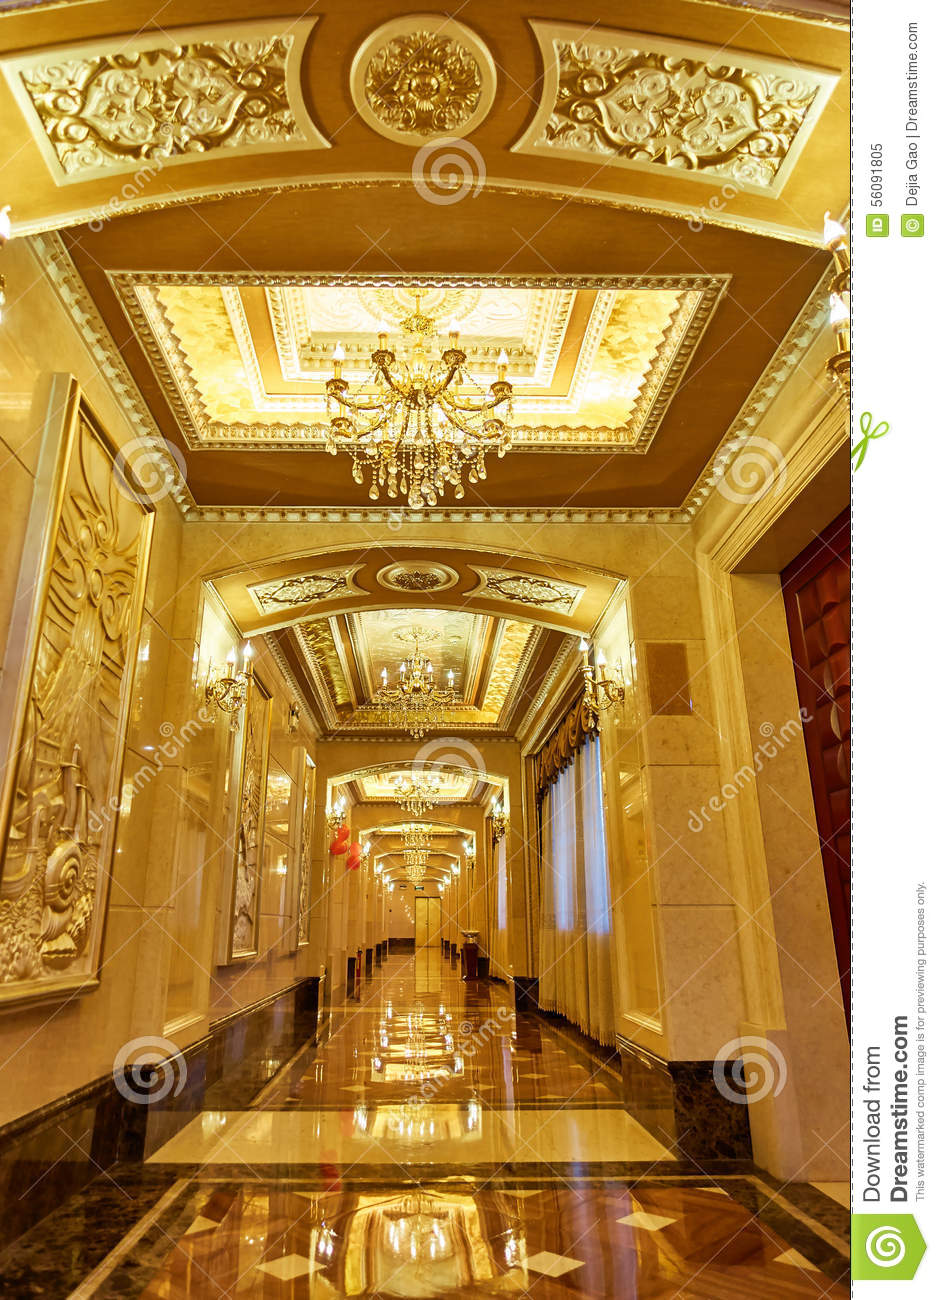 Hotel corridor hallway stock image image of inside golden 56091805 - Decoratie corridor ...